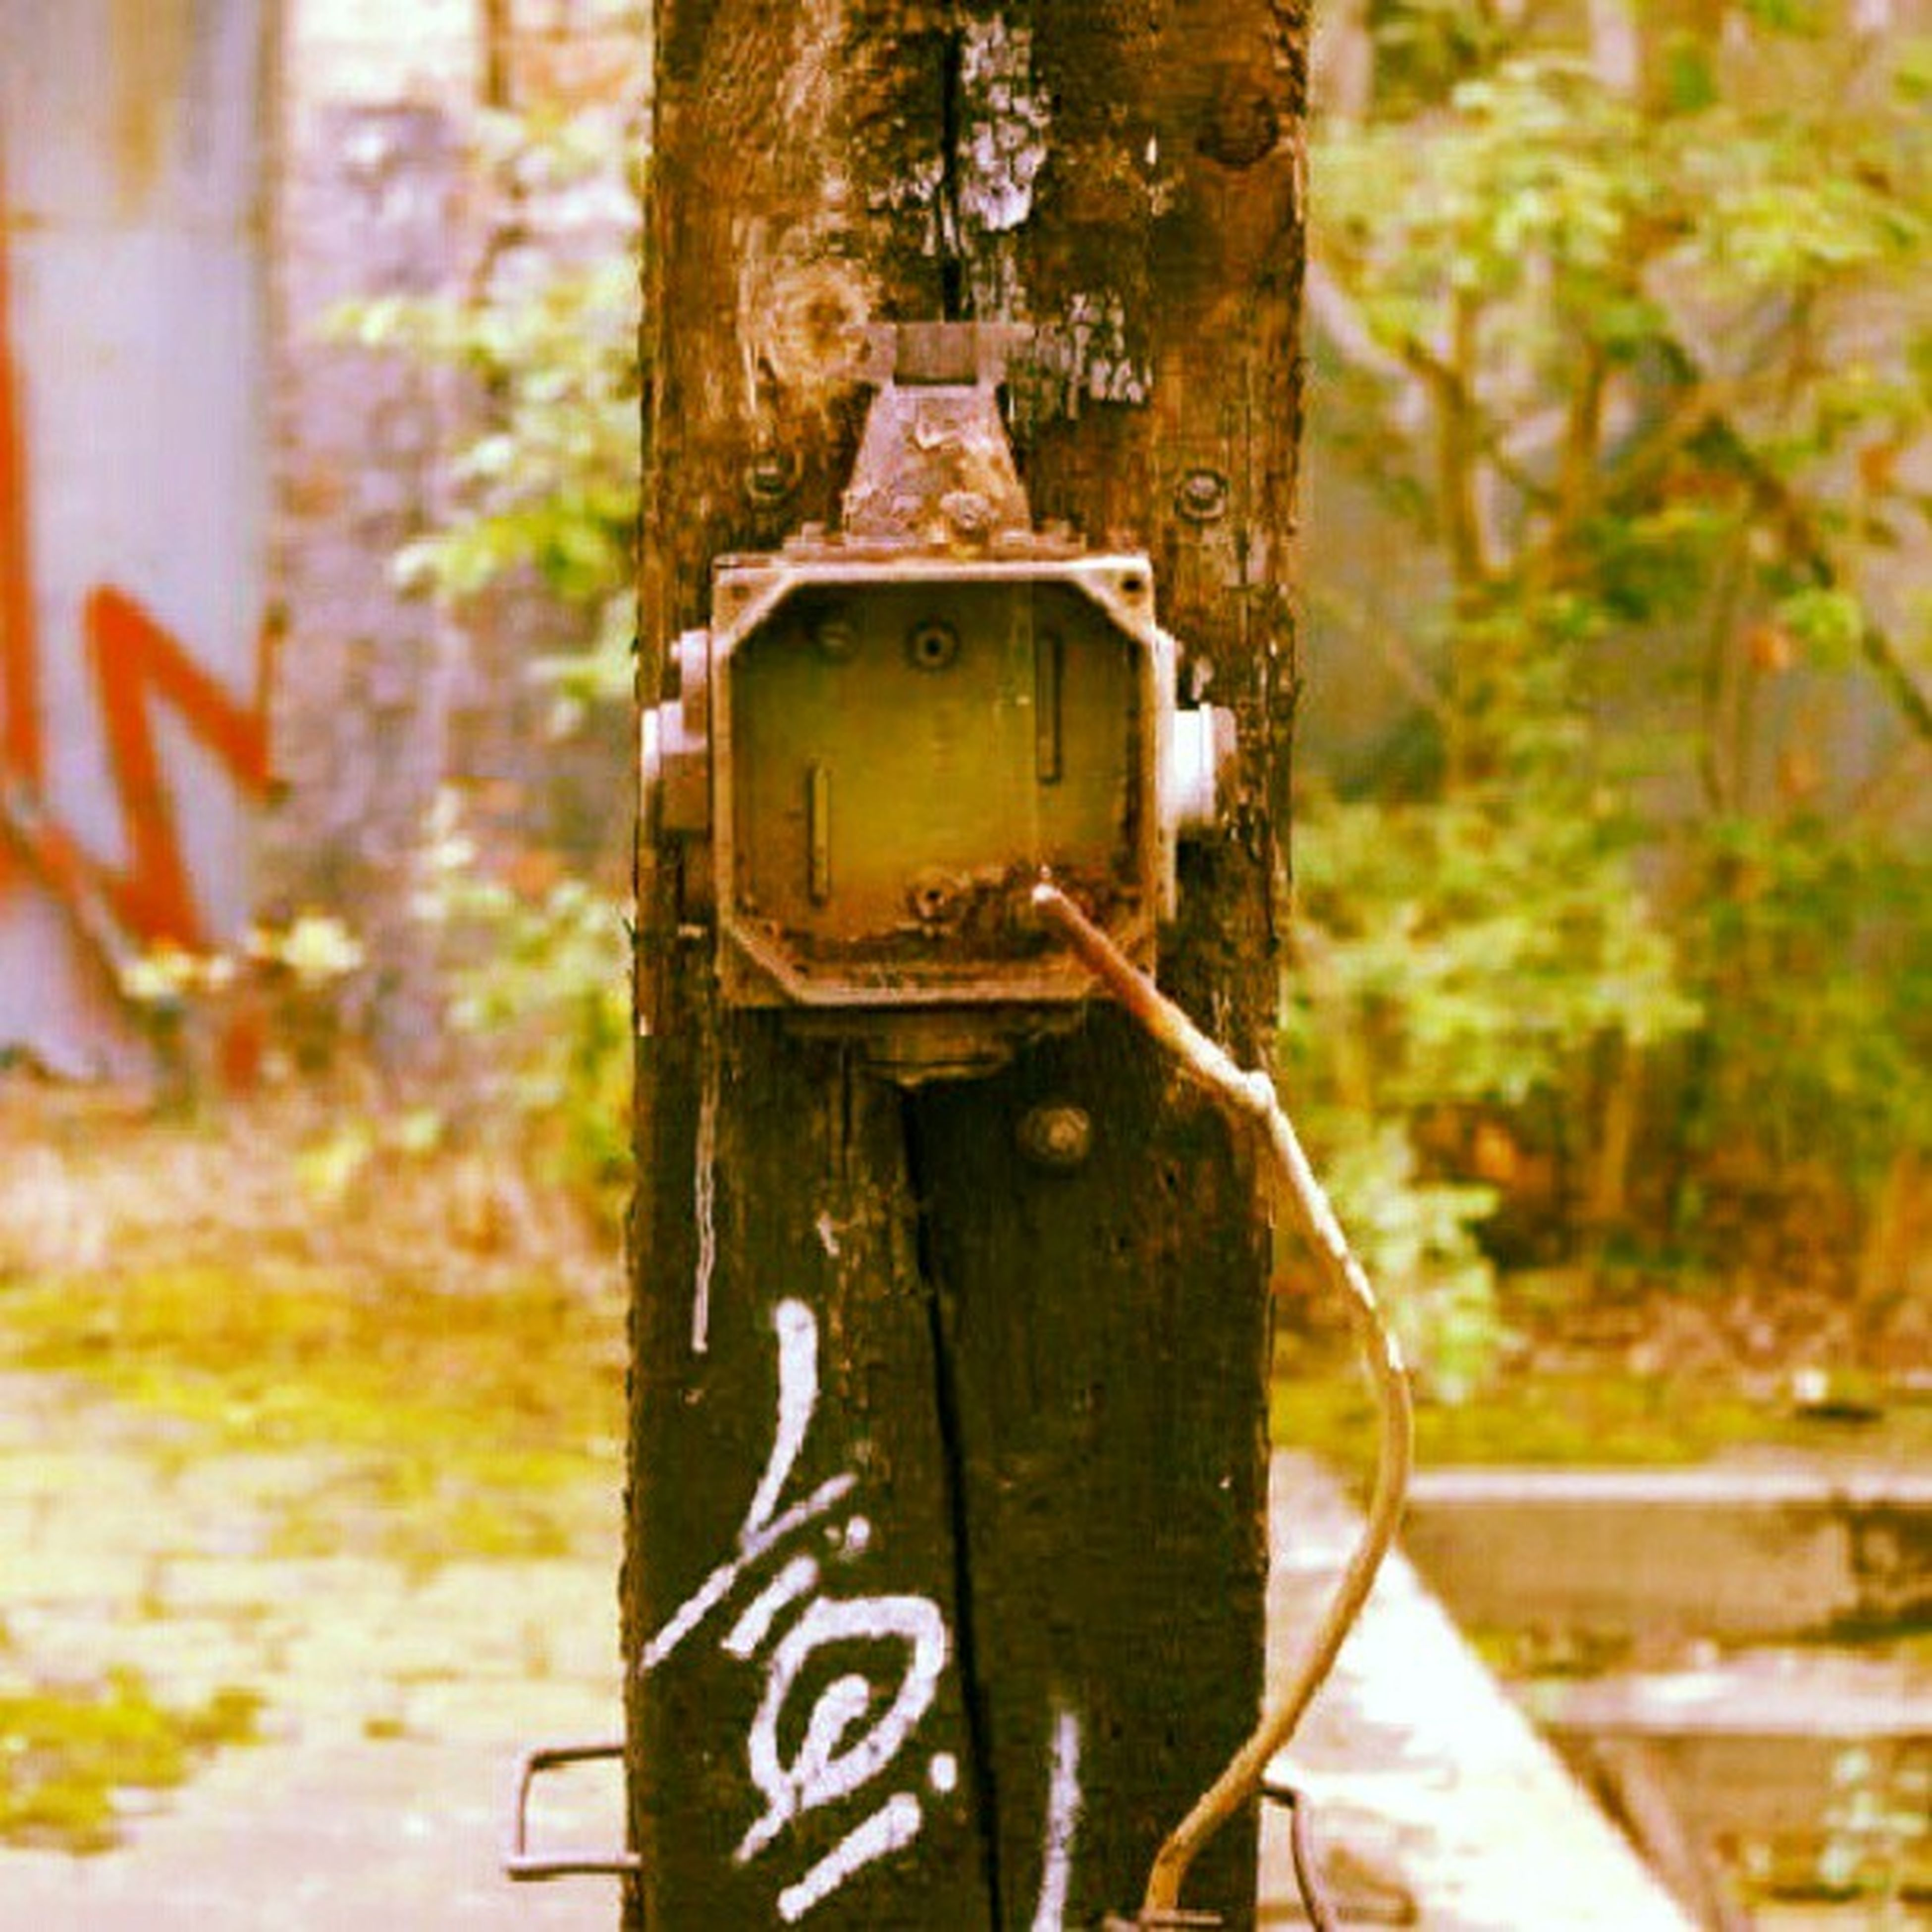 text, communication, focus on foreground, close-up, western script, rusty, metal, old, day, yellow, number, tree, wood - material, weathered, no people, outdoors, padlock, abandoned, selective focus, information sign